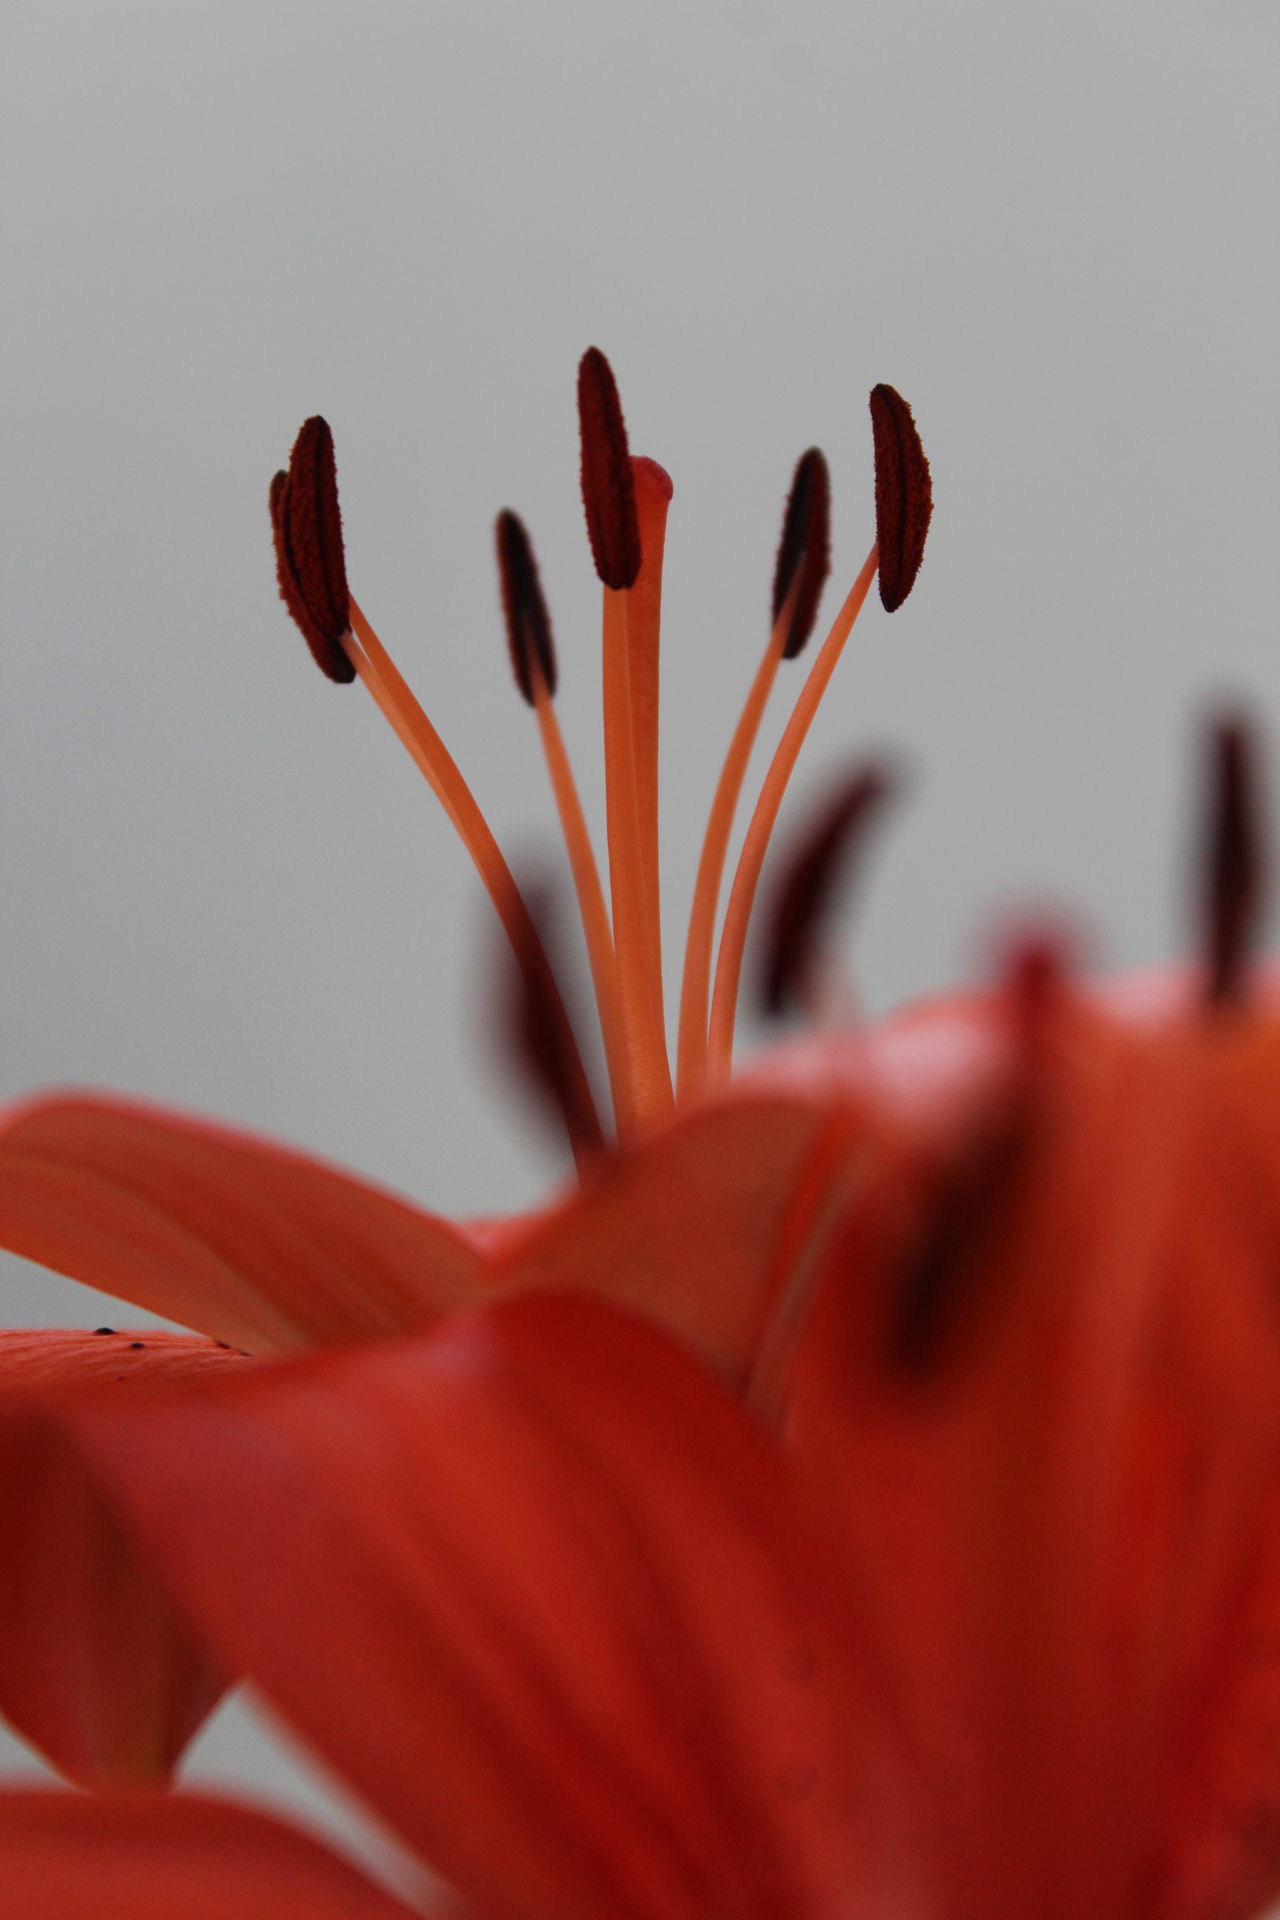 Beauty In Nature Blooming Close-up Day Day Lily Flower Flower Head Fragility Freshness Growth Nature No People Outdoors Petal Plant Red Selective Focus Tiger Lily